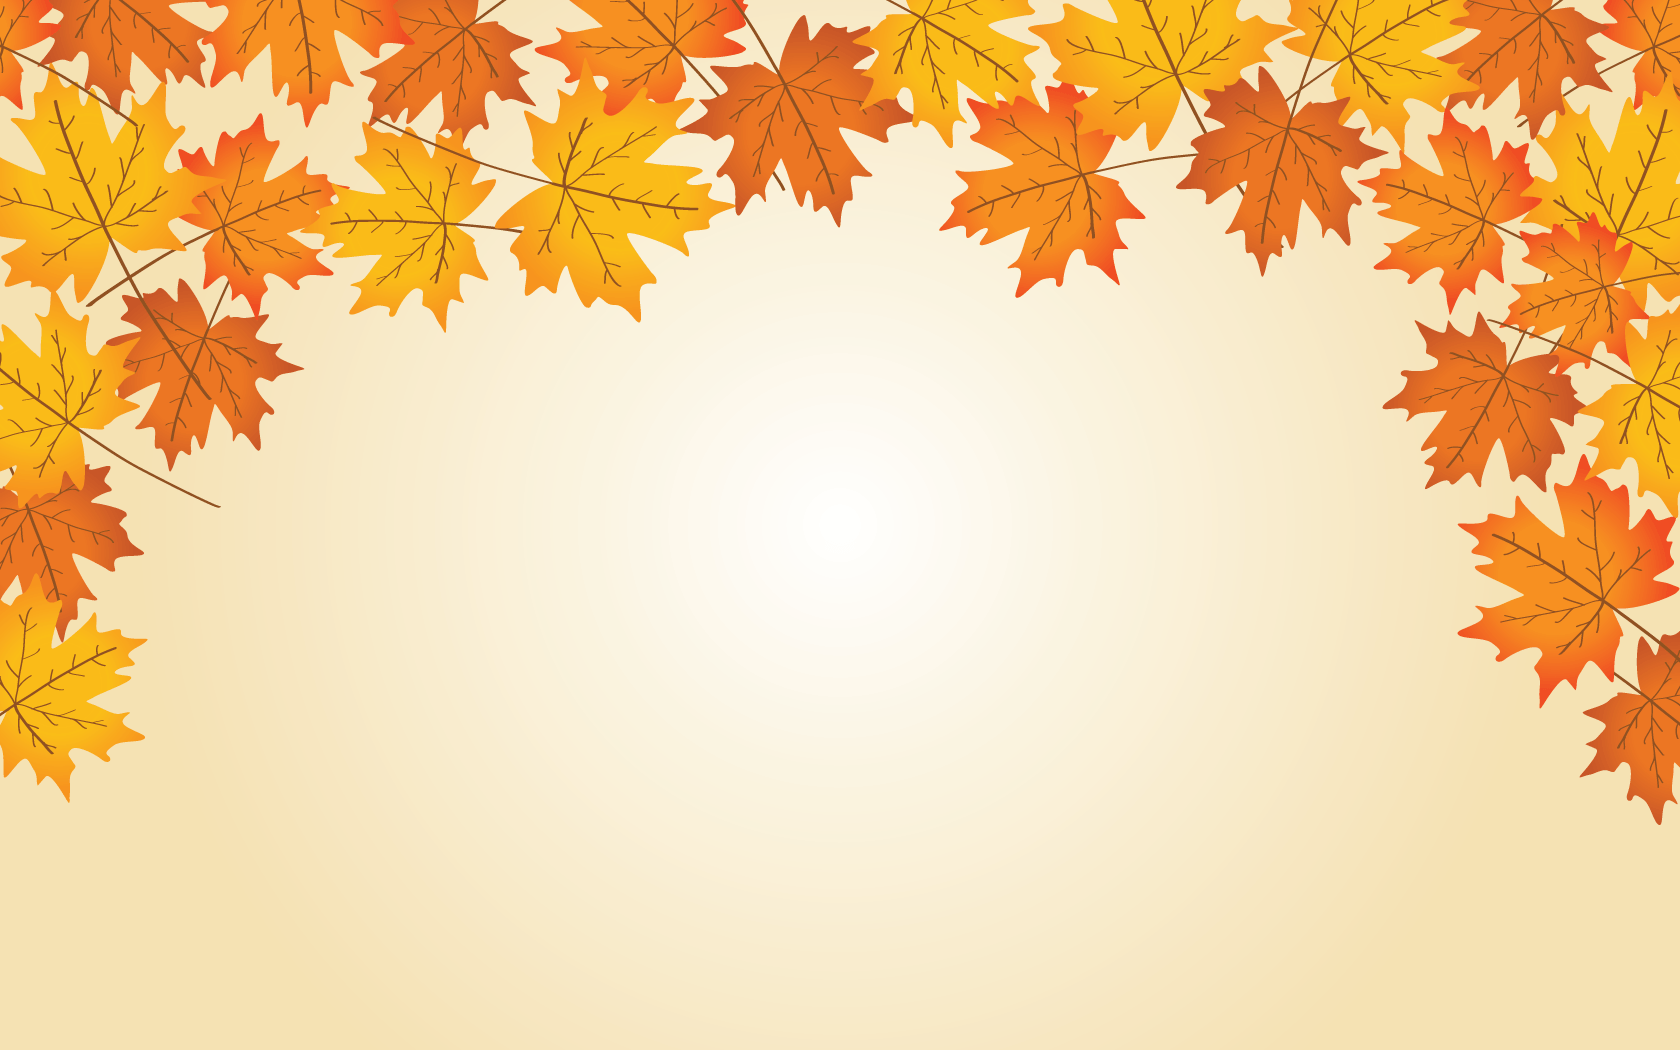 Free Autumn Backgrounds - Wallpaper Cave